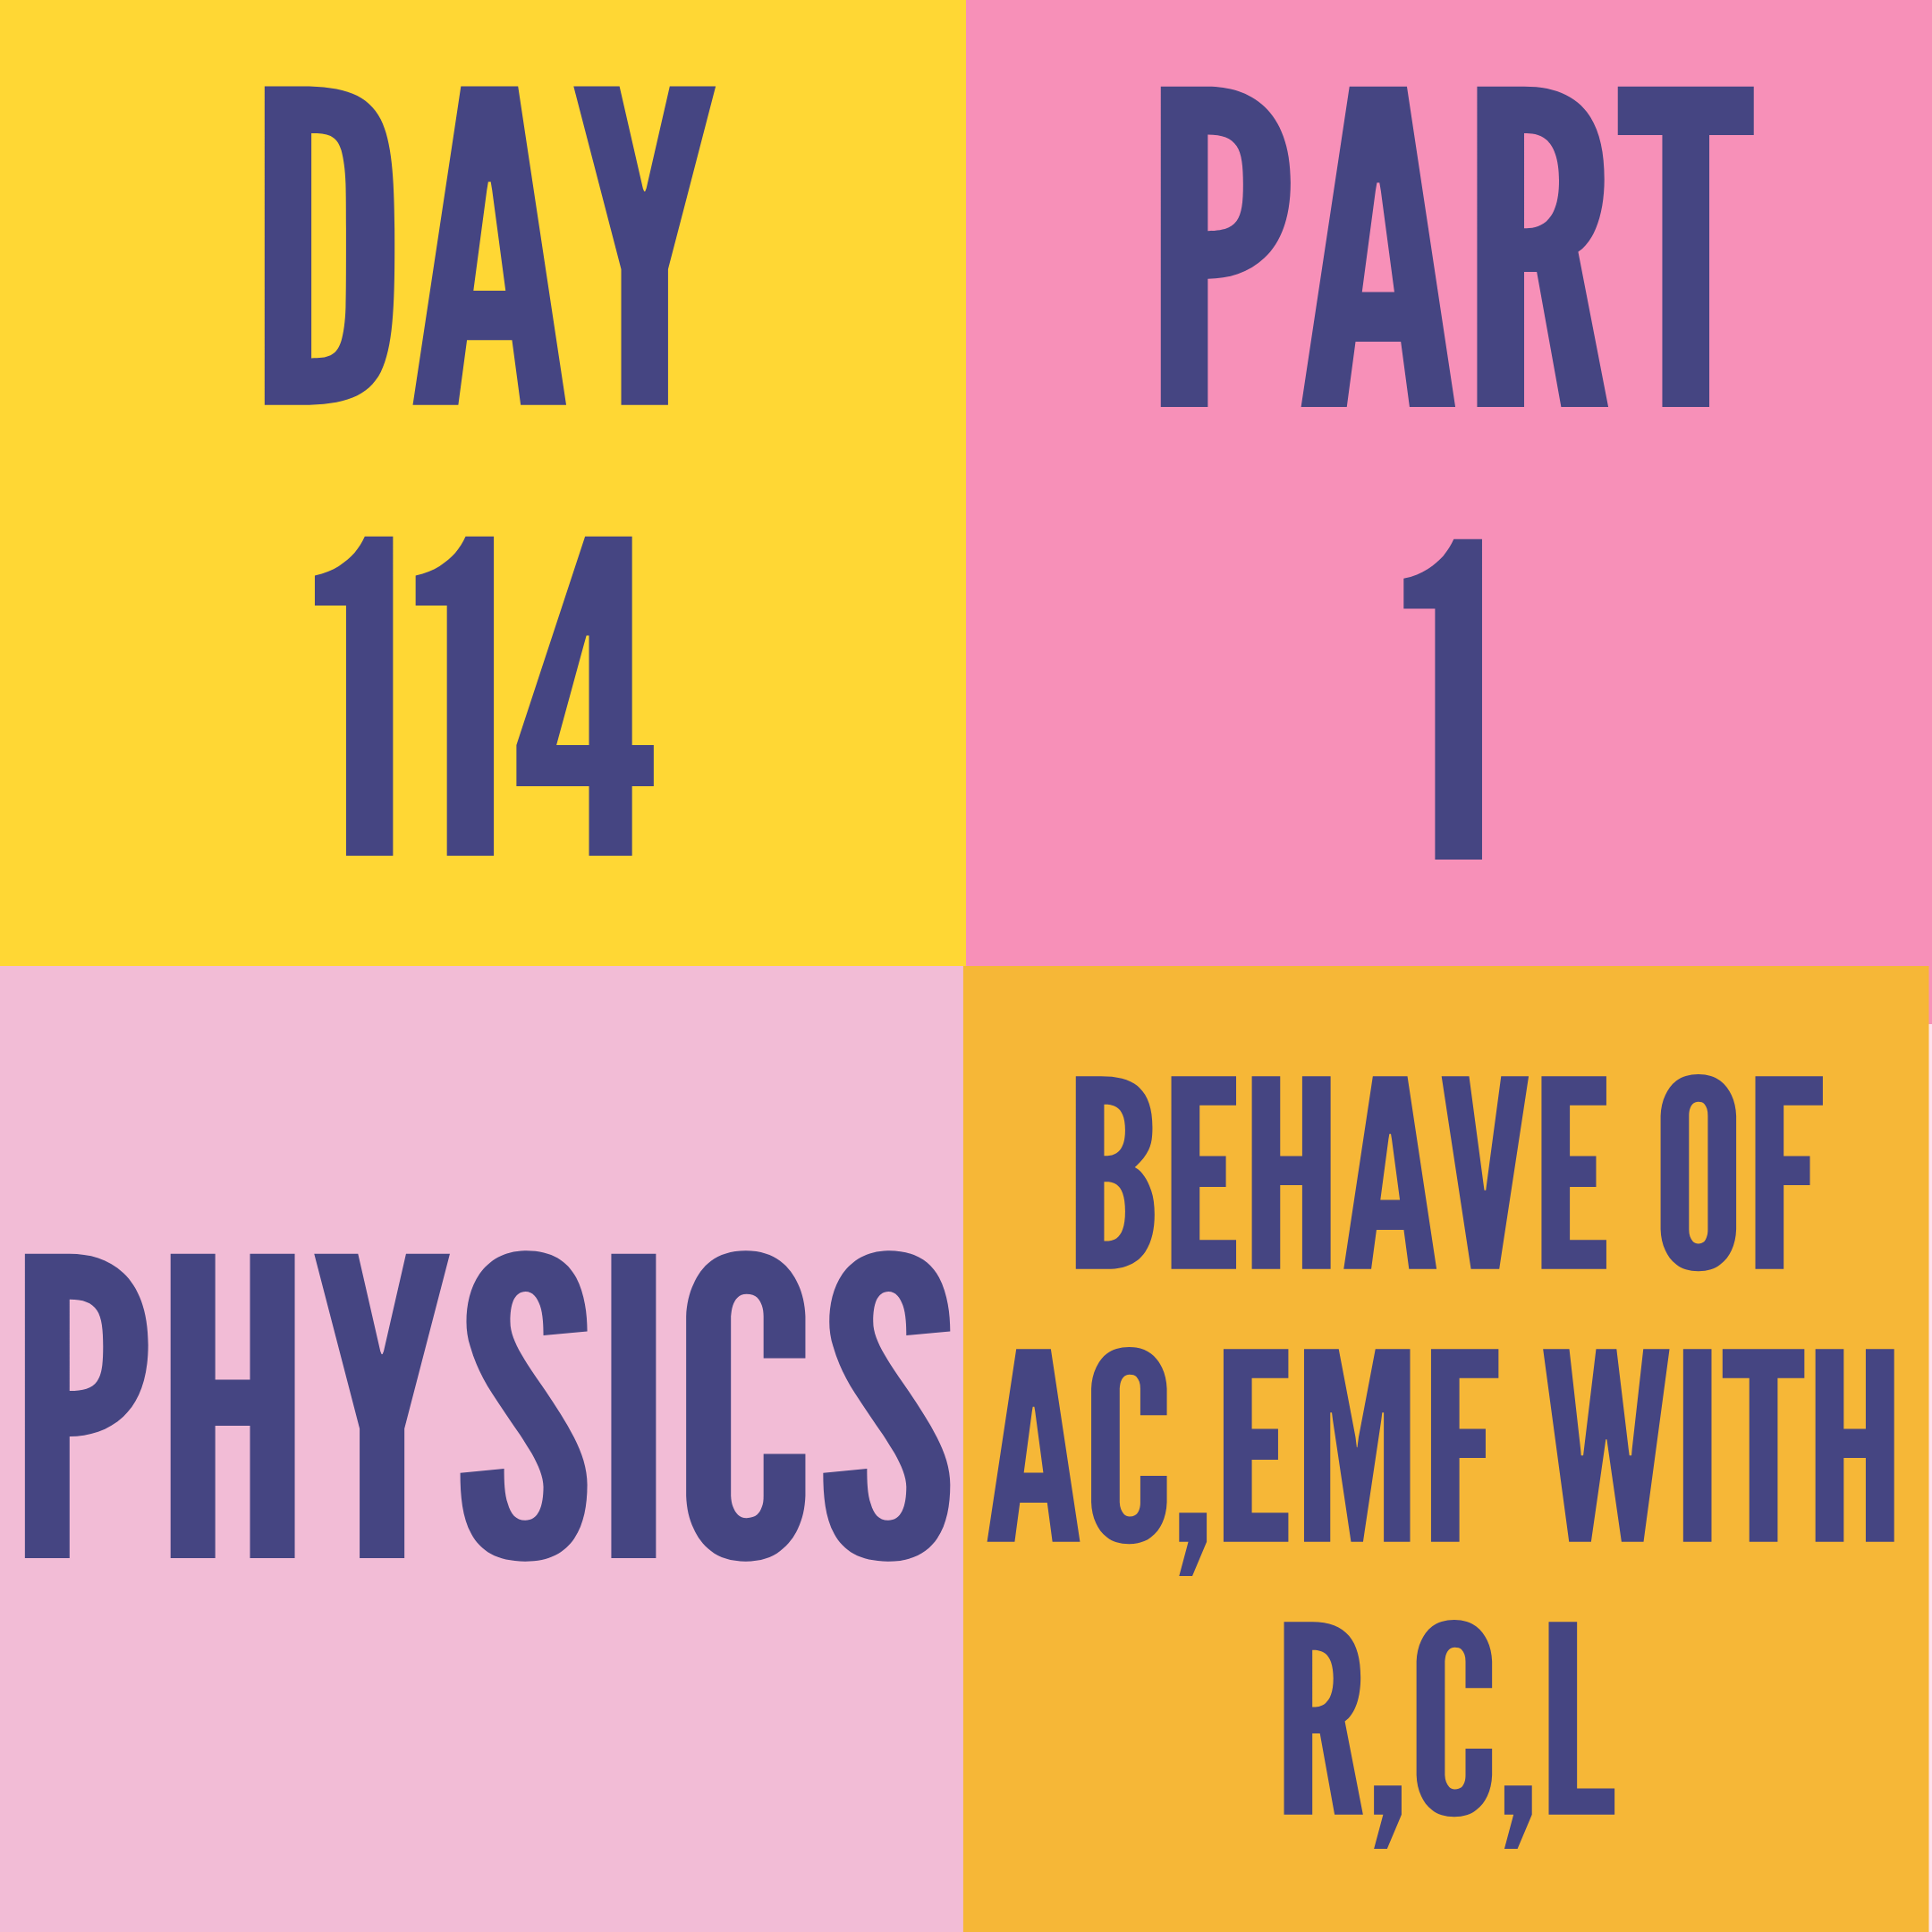 DAY-114 PART-1 BEHAVE OF AC,EMF WITH R,C,L